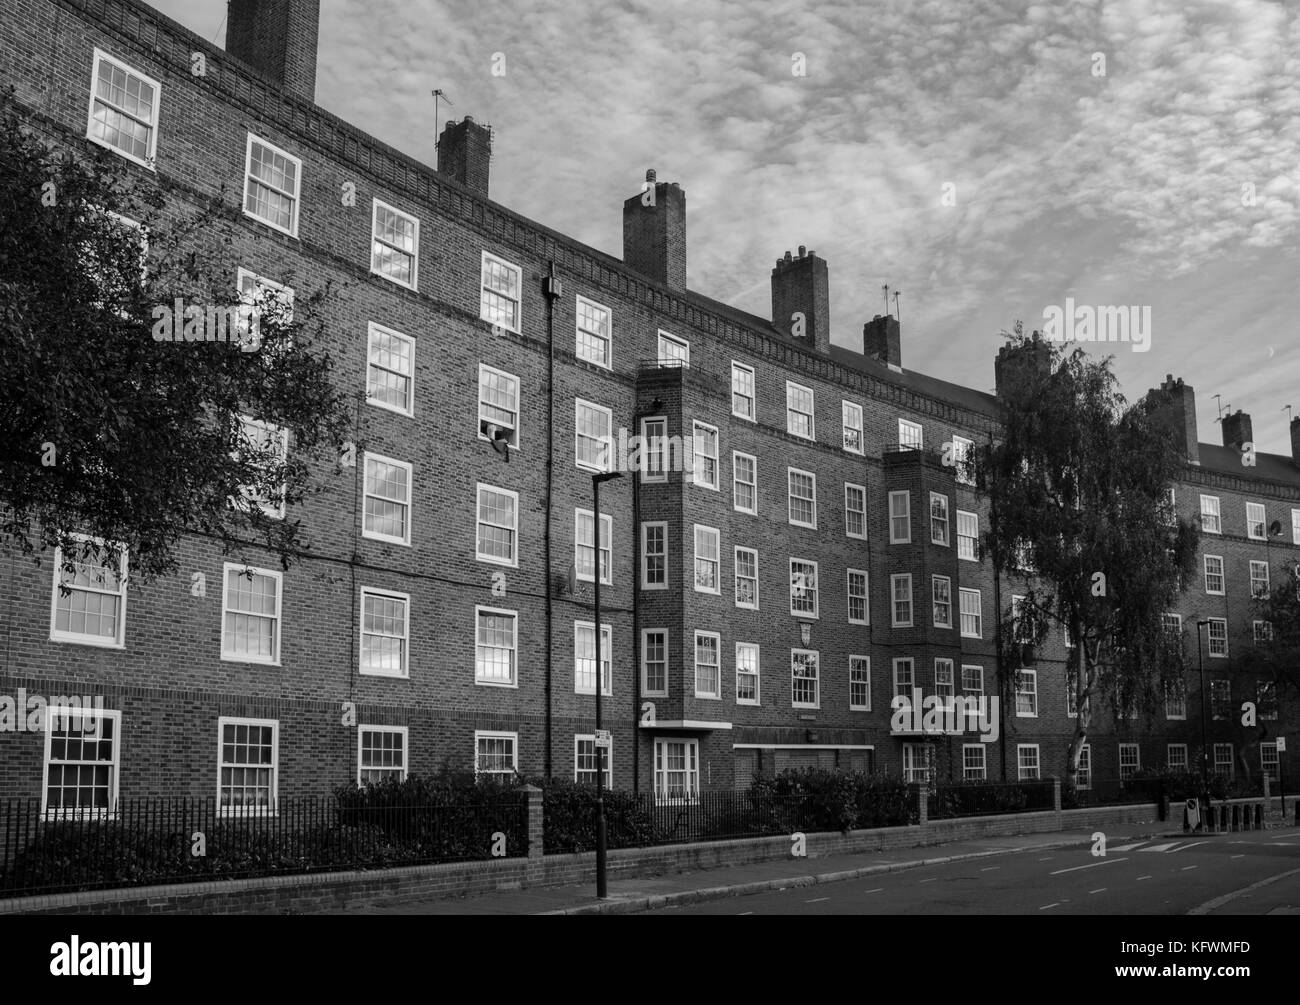 Residential brick building on Kennington Oval street London - Stock Image